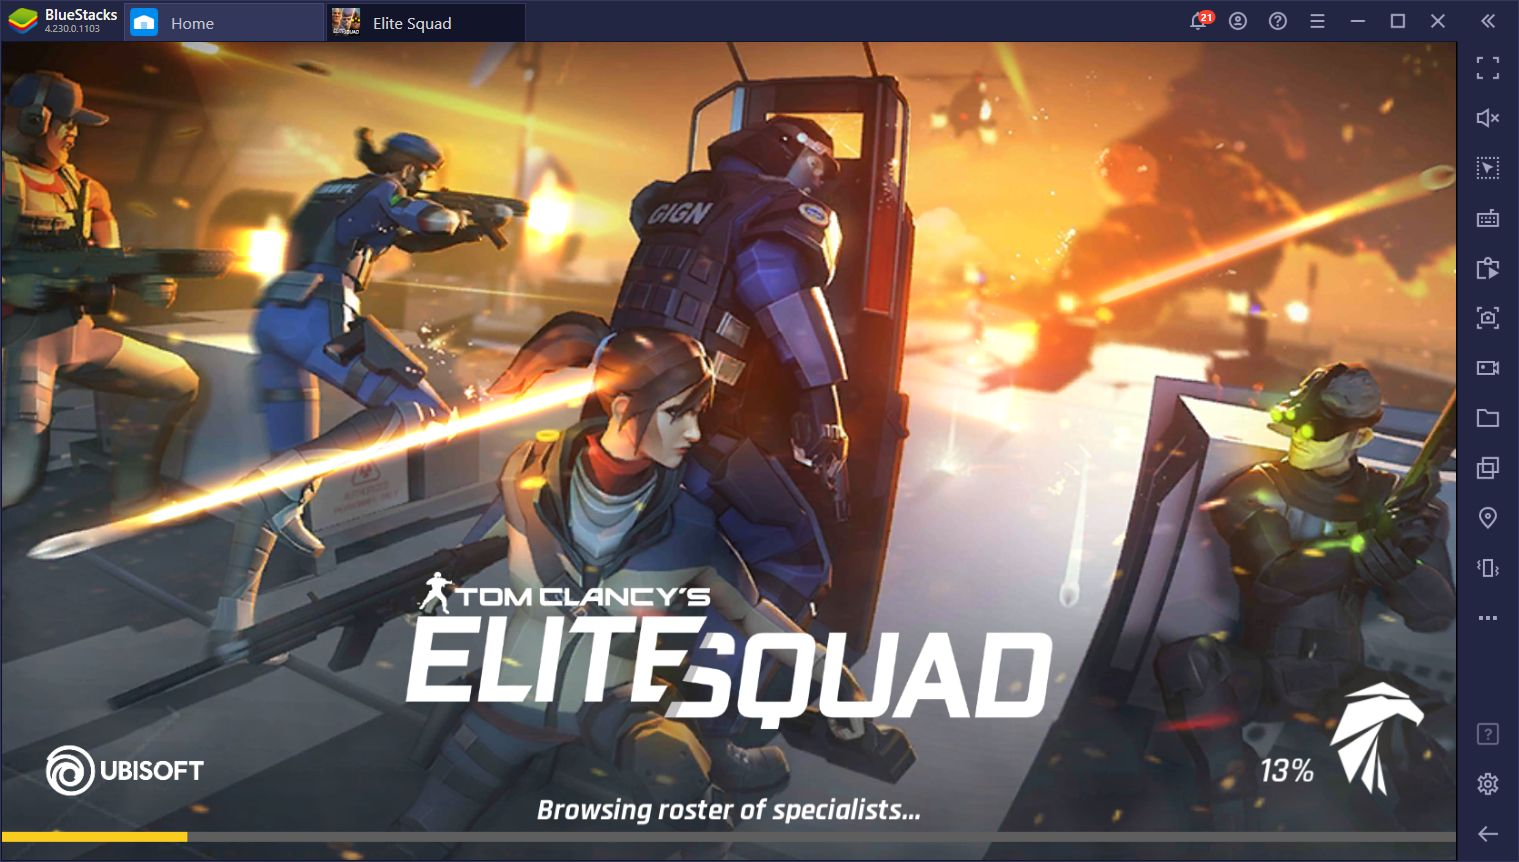 Tom Clancy's Elite Squad PC – How to Install and Play Ubisoft's Latest Strategy Shooter on PC